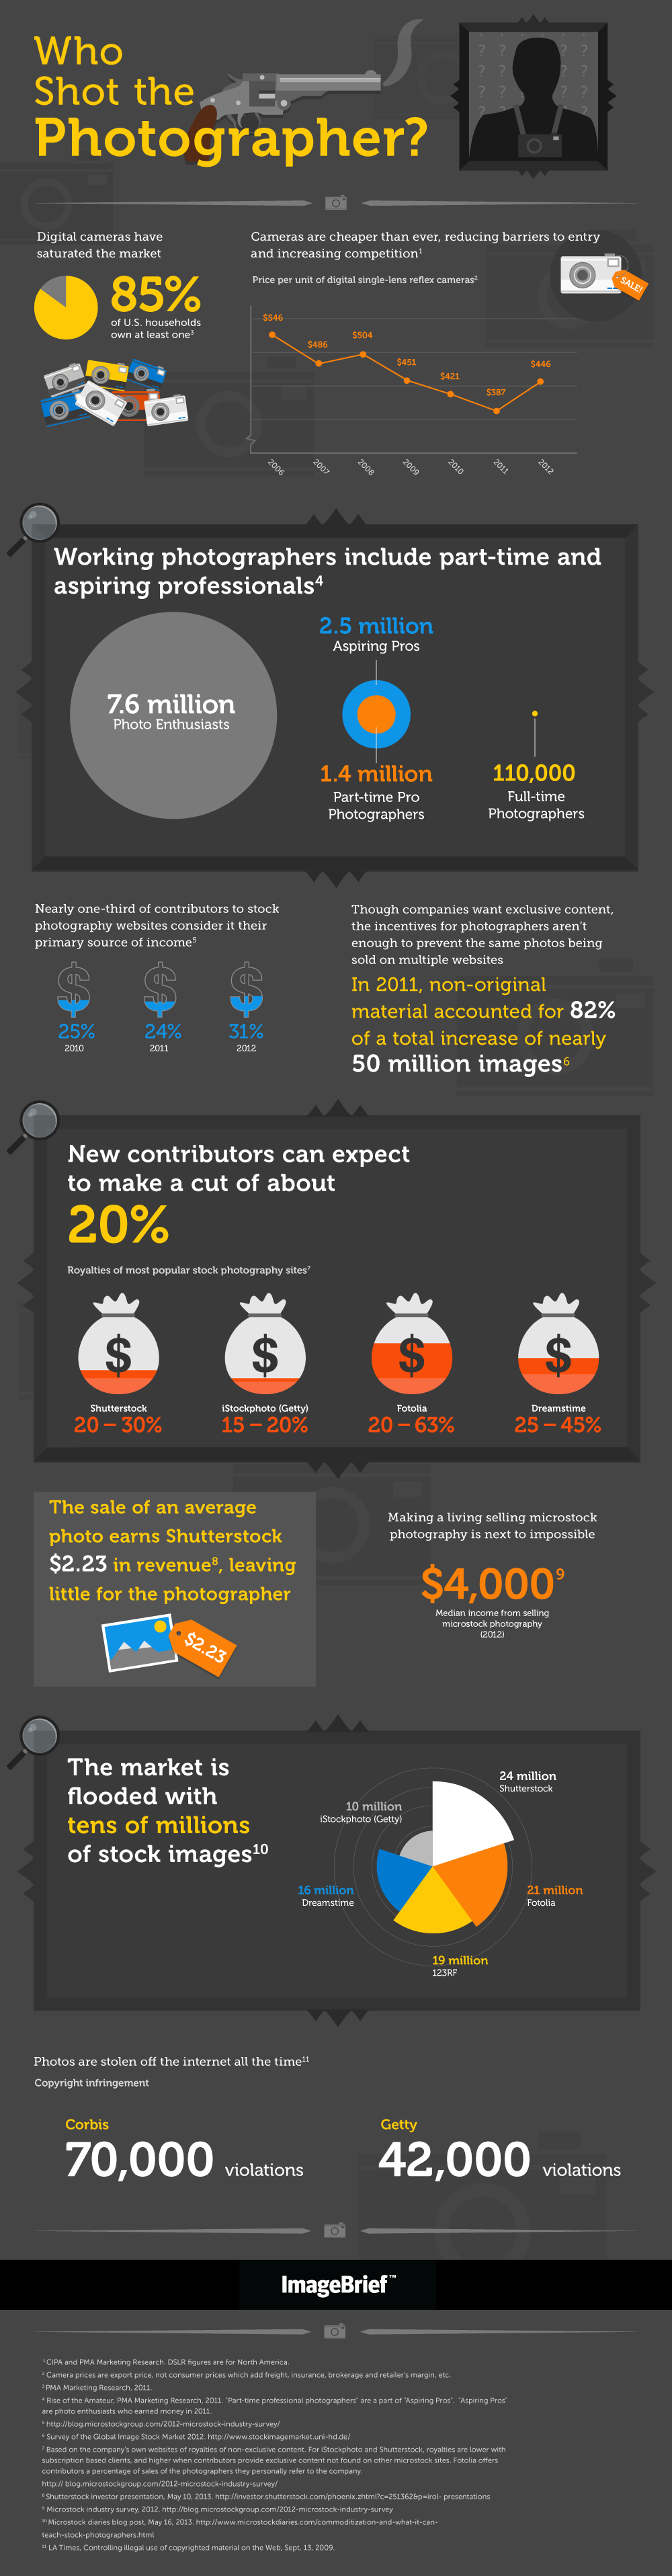 Imagebrief Infographic Who Shot The Photographer